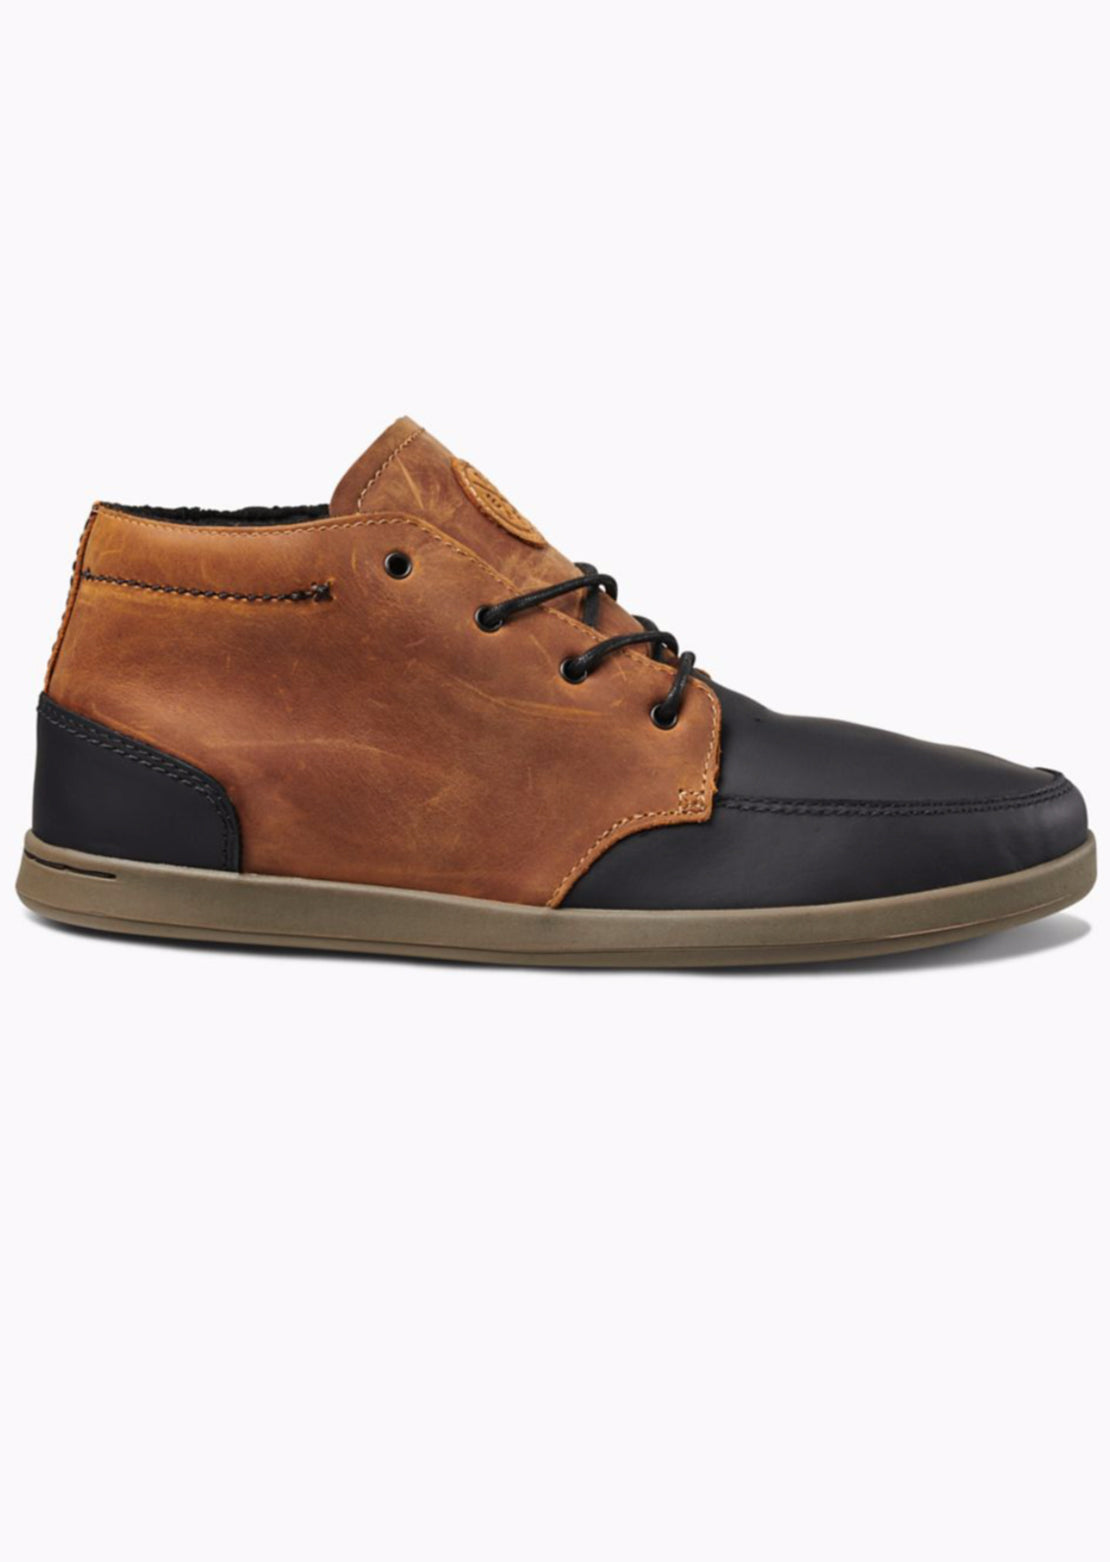 Reef Men's Spiniker Mid WT Boots Tan/Black